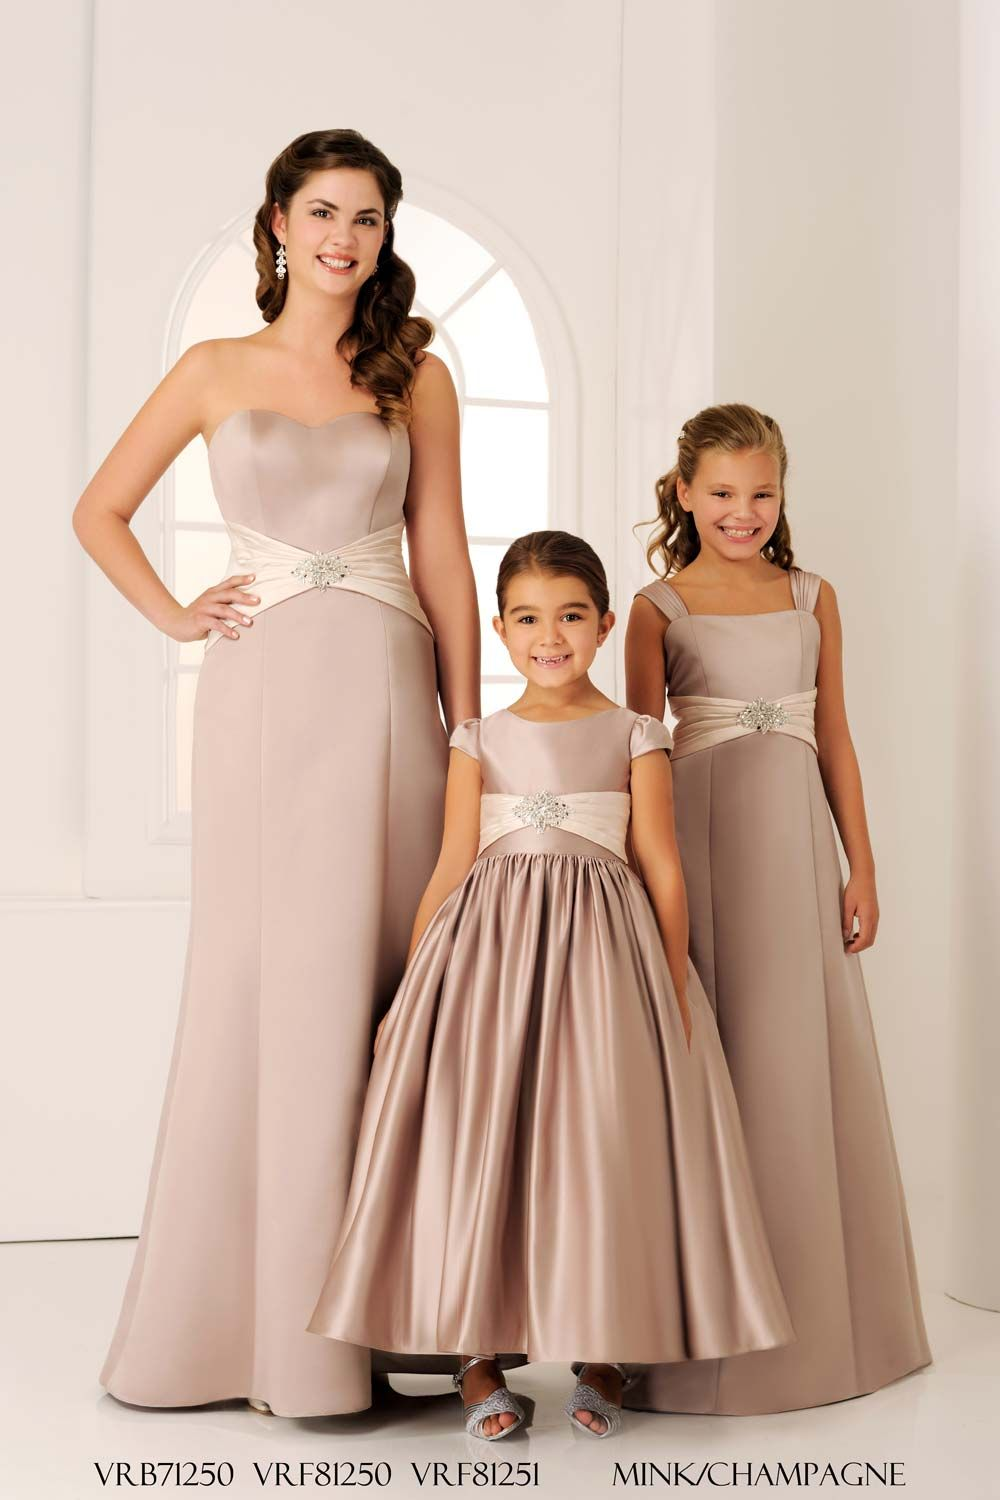 15 Champagne Bridesmaid Dresses That Your S Will Love